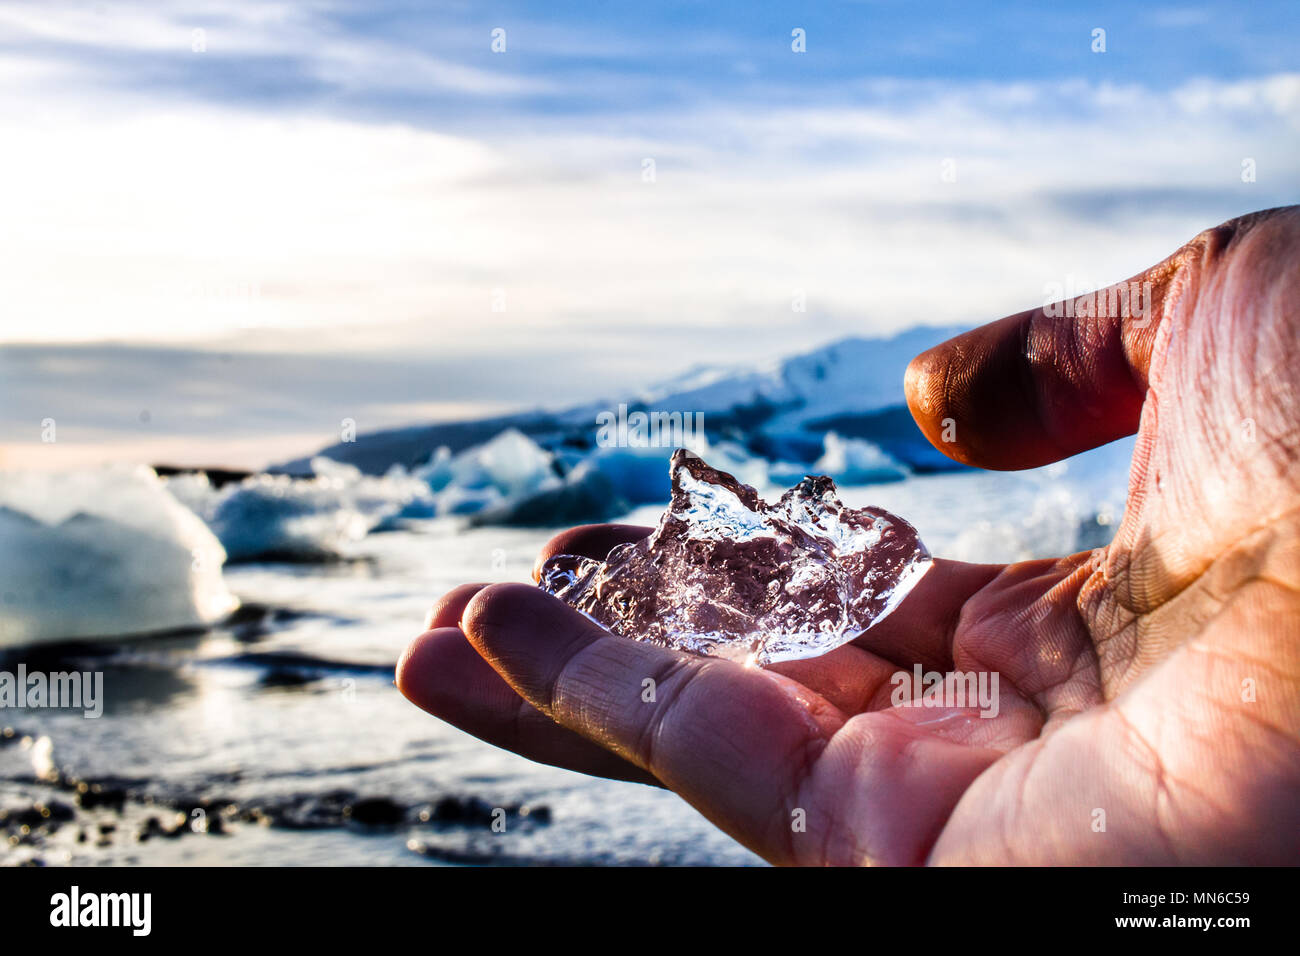 Iceberg in Hand - Stock Image